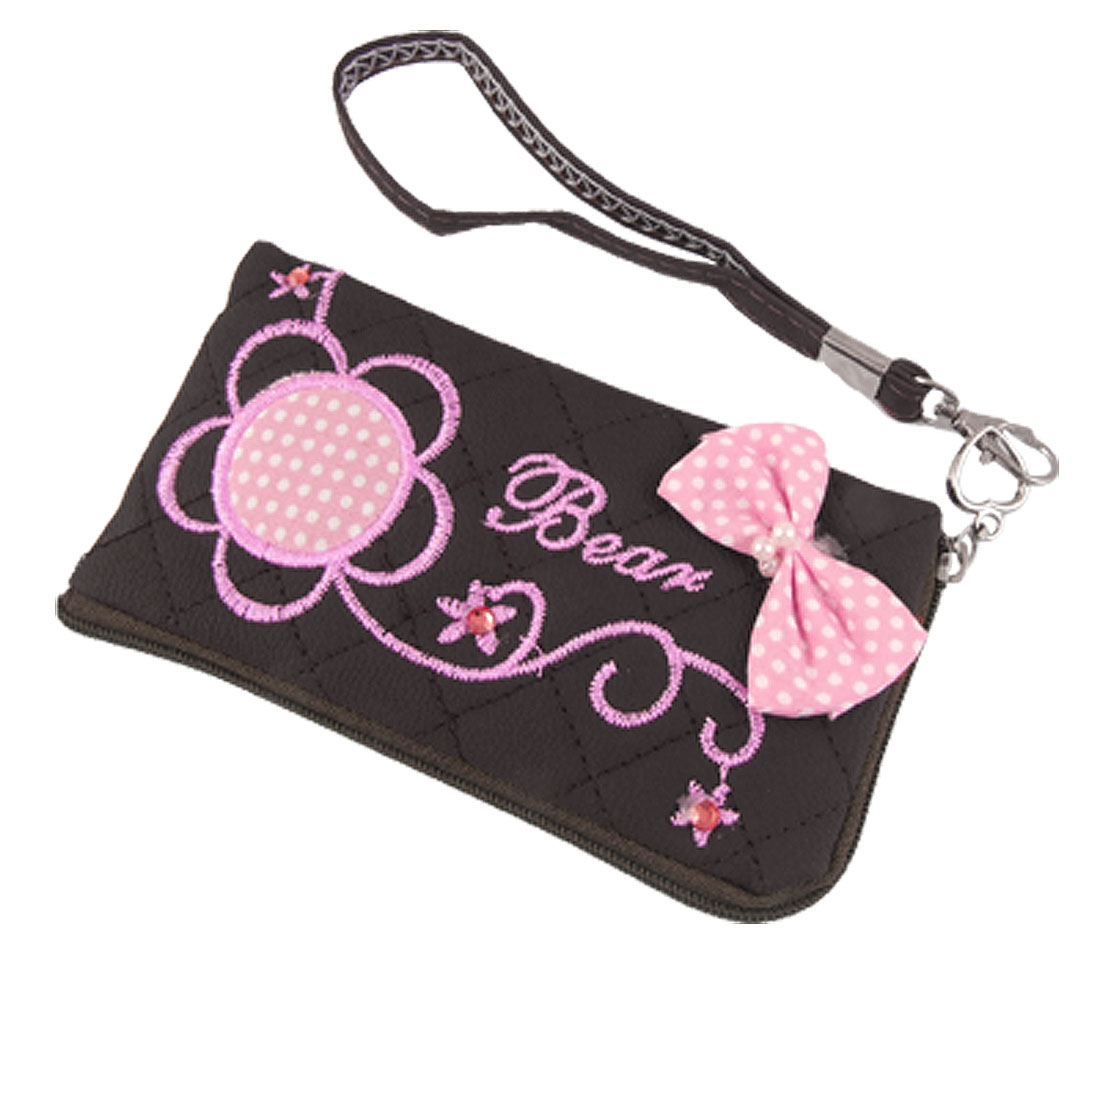 L Shape Zipper Pink Flower Faux Leather Phone Bag Pouch w Hand Strap